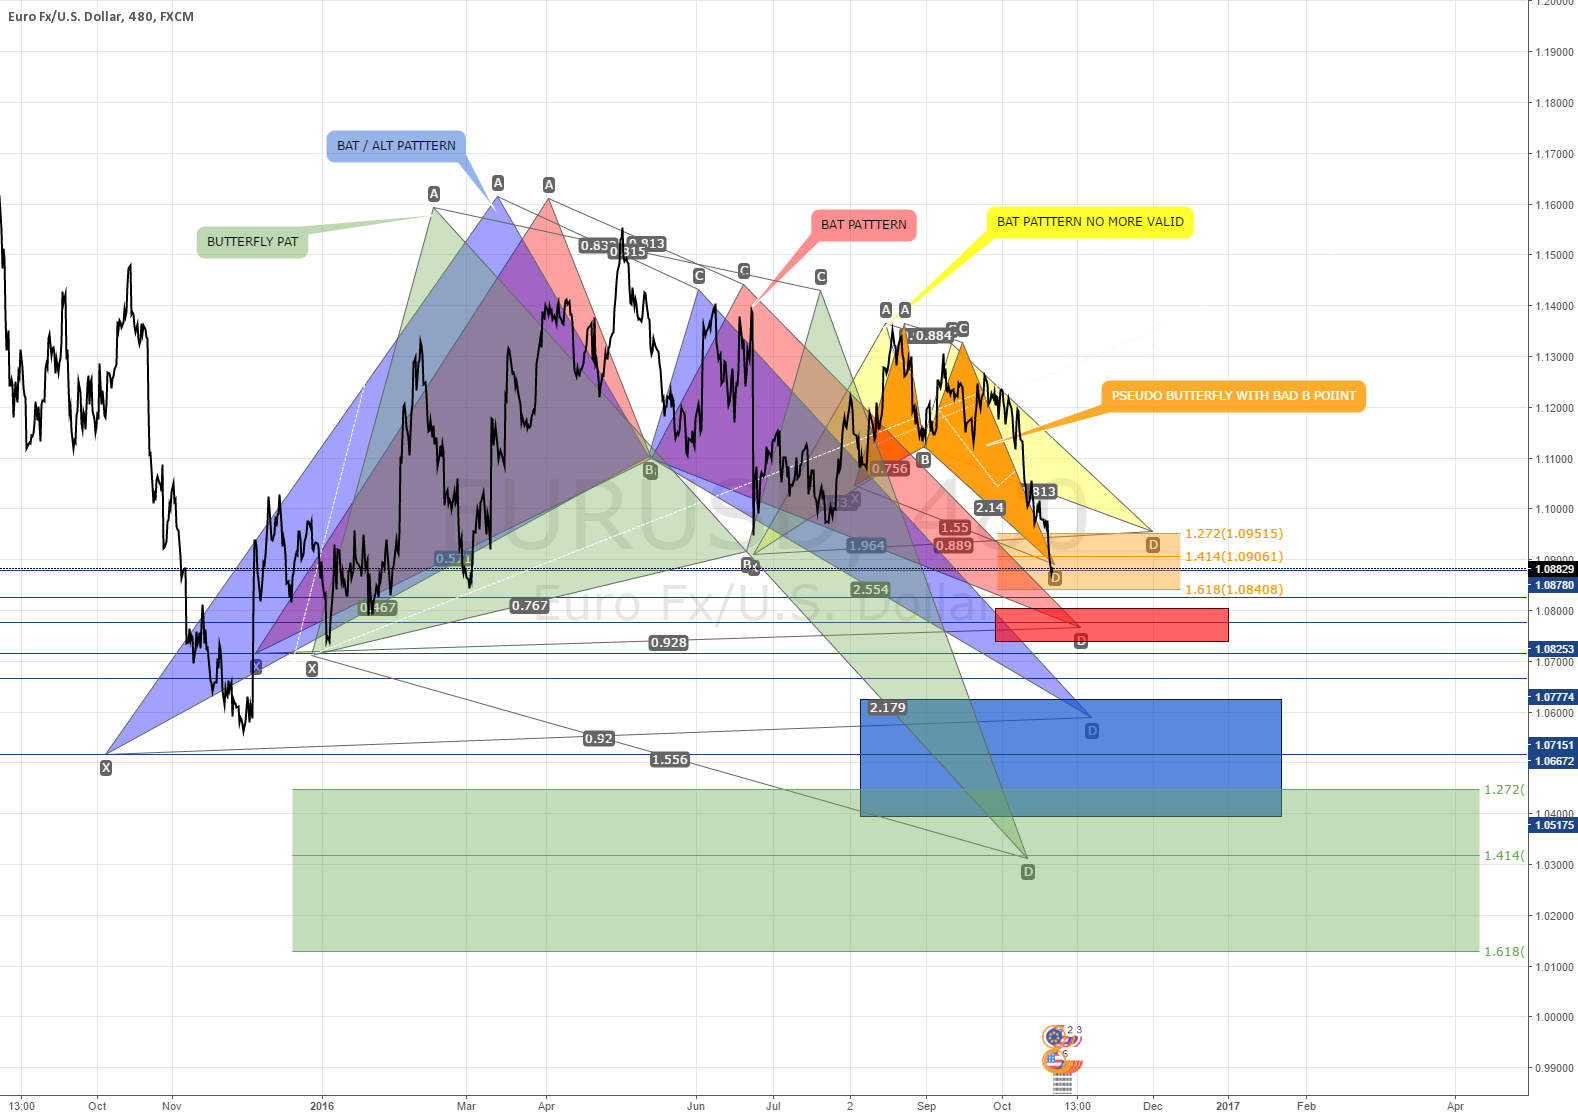 EURUSD ONLY FOR THOSES WHO LIKE COLORS AND PATTERNS